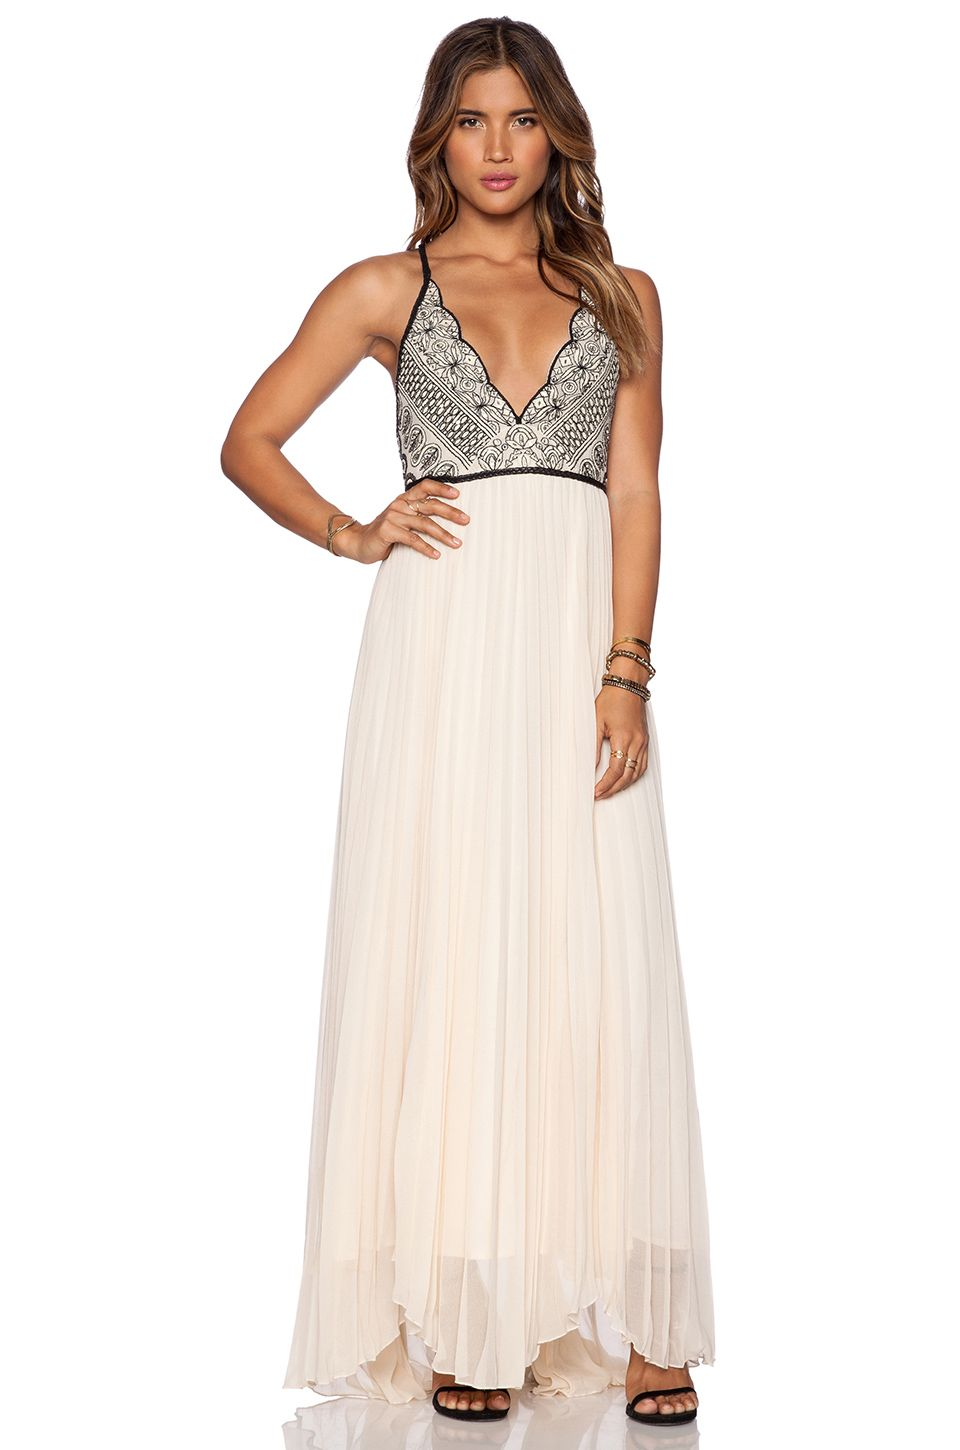 Free People Bell Of The Ball Maxi Dress In Tea At Revolveclothing Prom Dress Inspiration Free People Prom Dress Fancy Dresses 12:48 ericas girly world 5. free people bell of the ball maxi dress